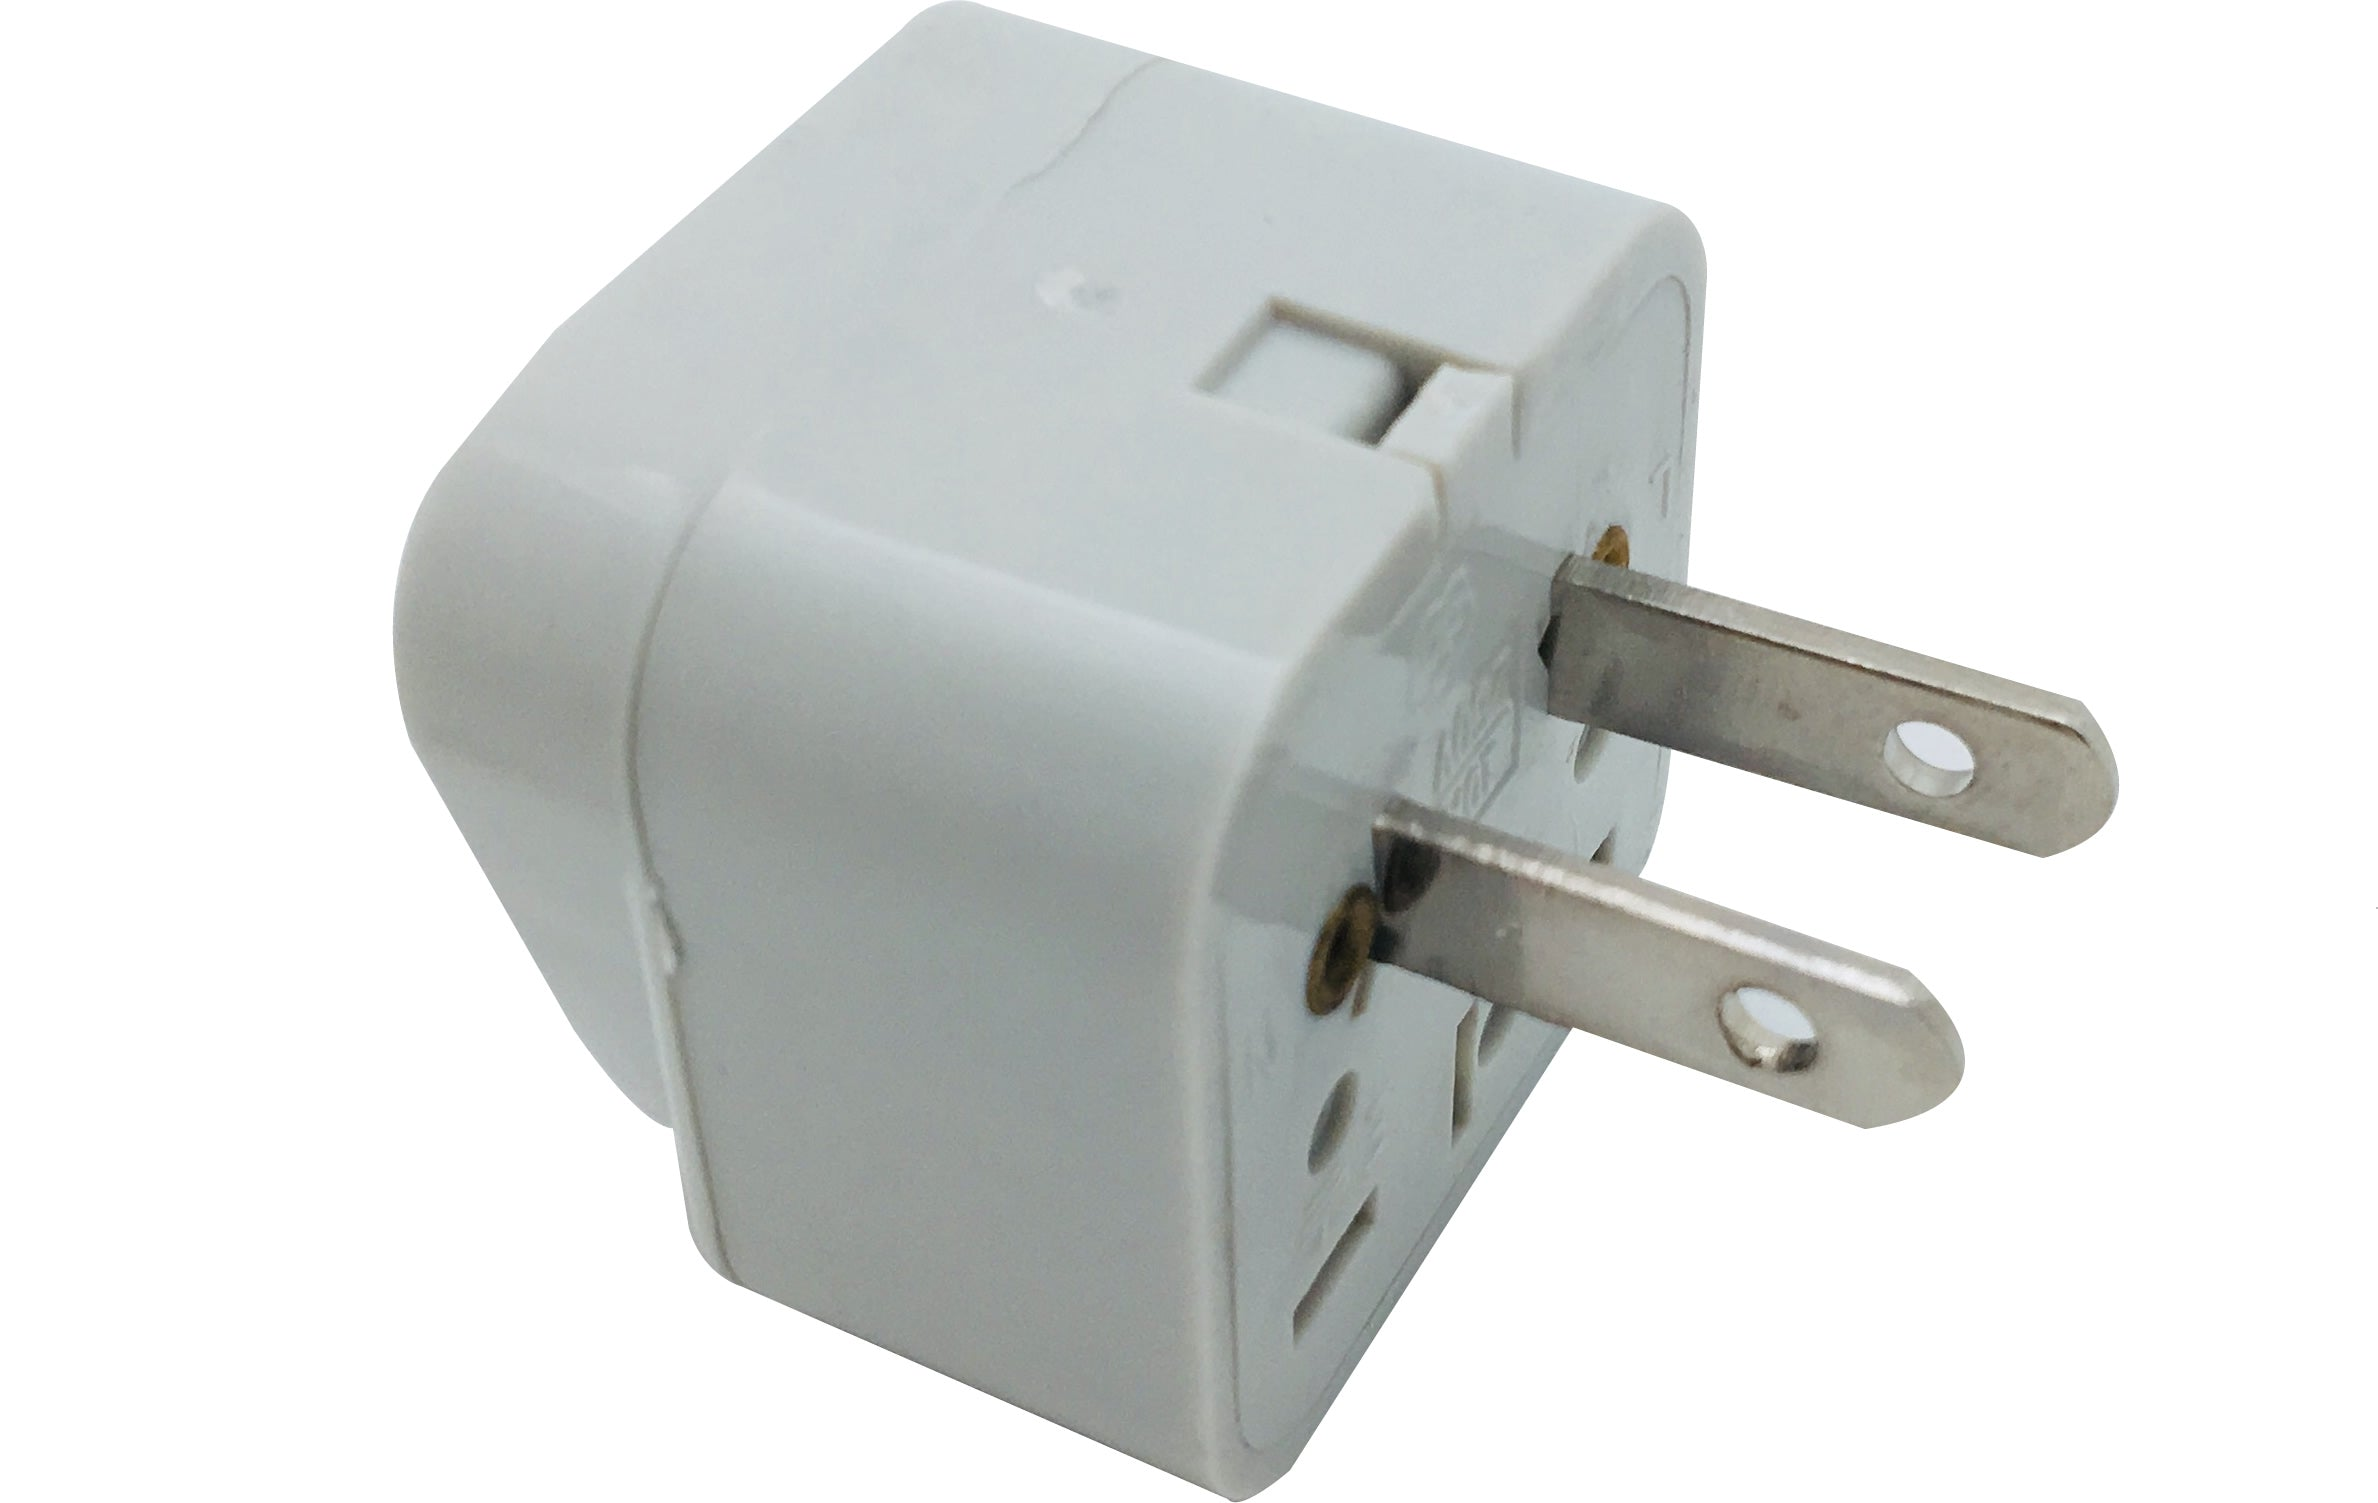 42-0305 Universal Power Plug Adapter: Flat blade attachment plug